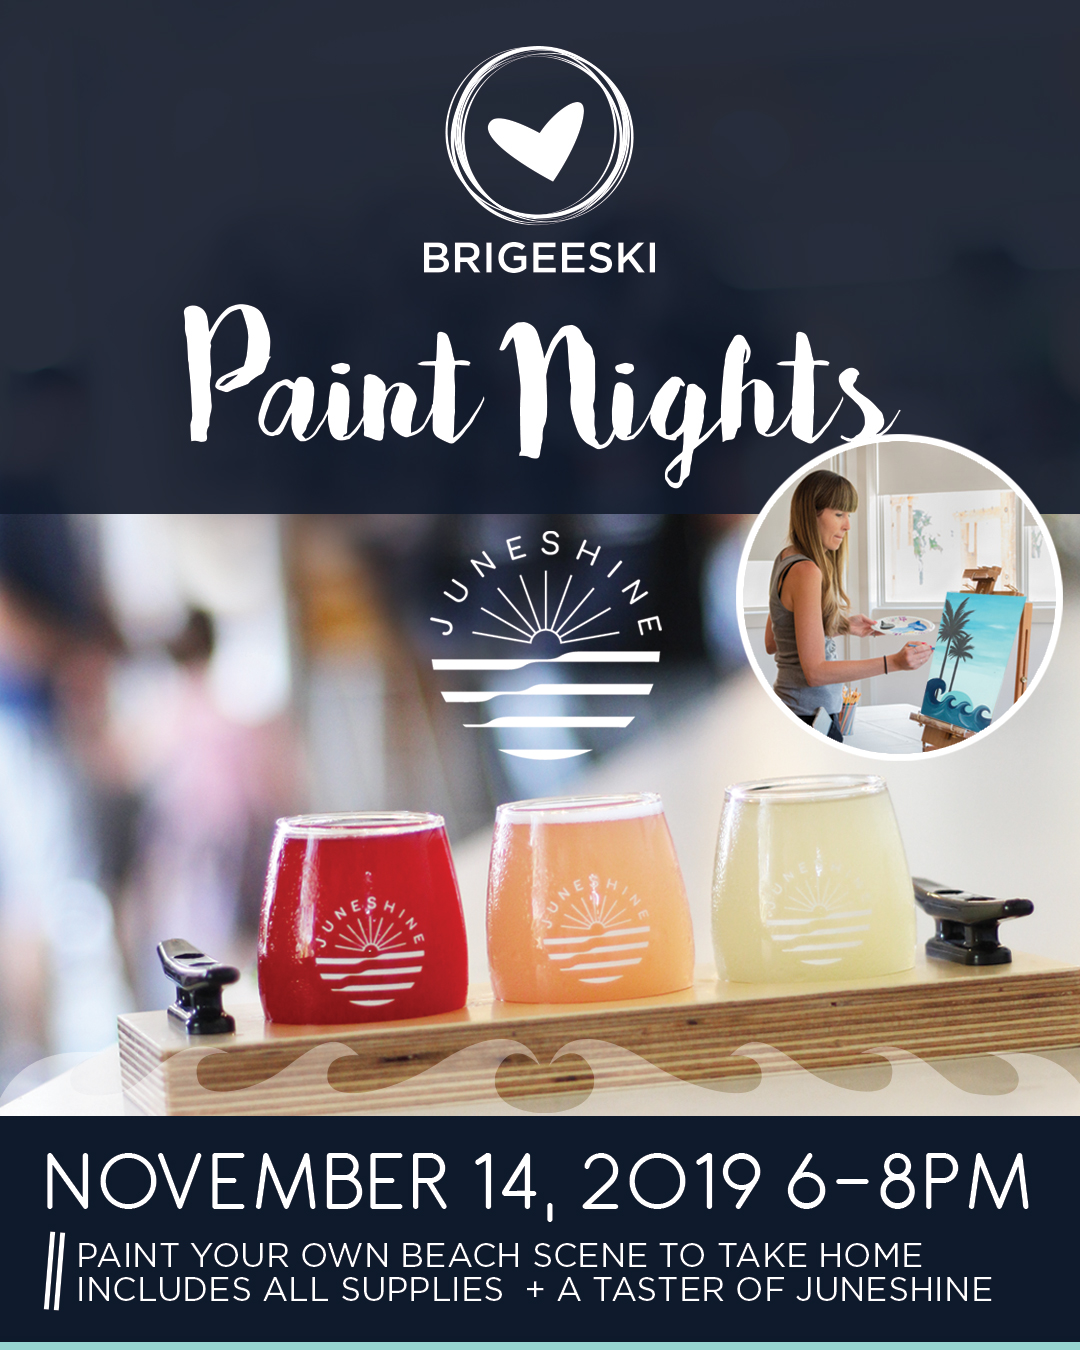 BriGeeski Paint Nights